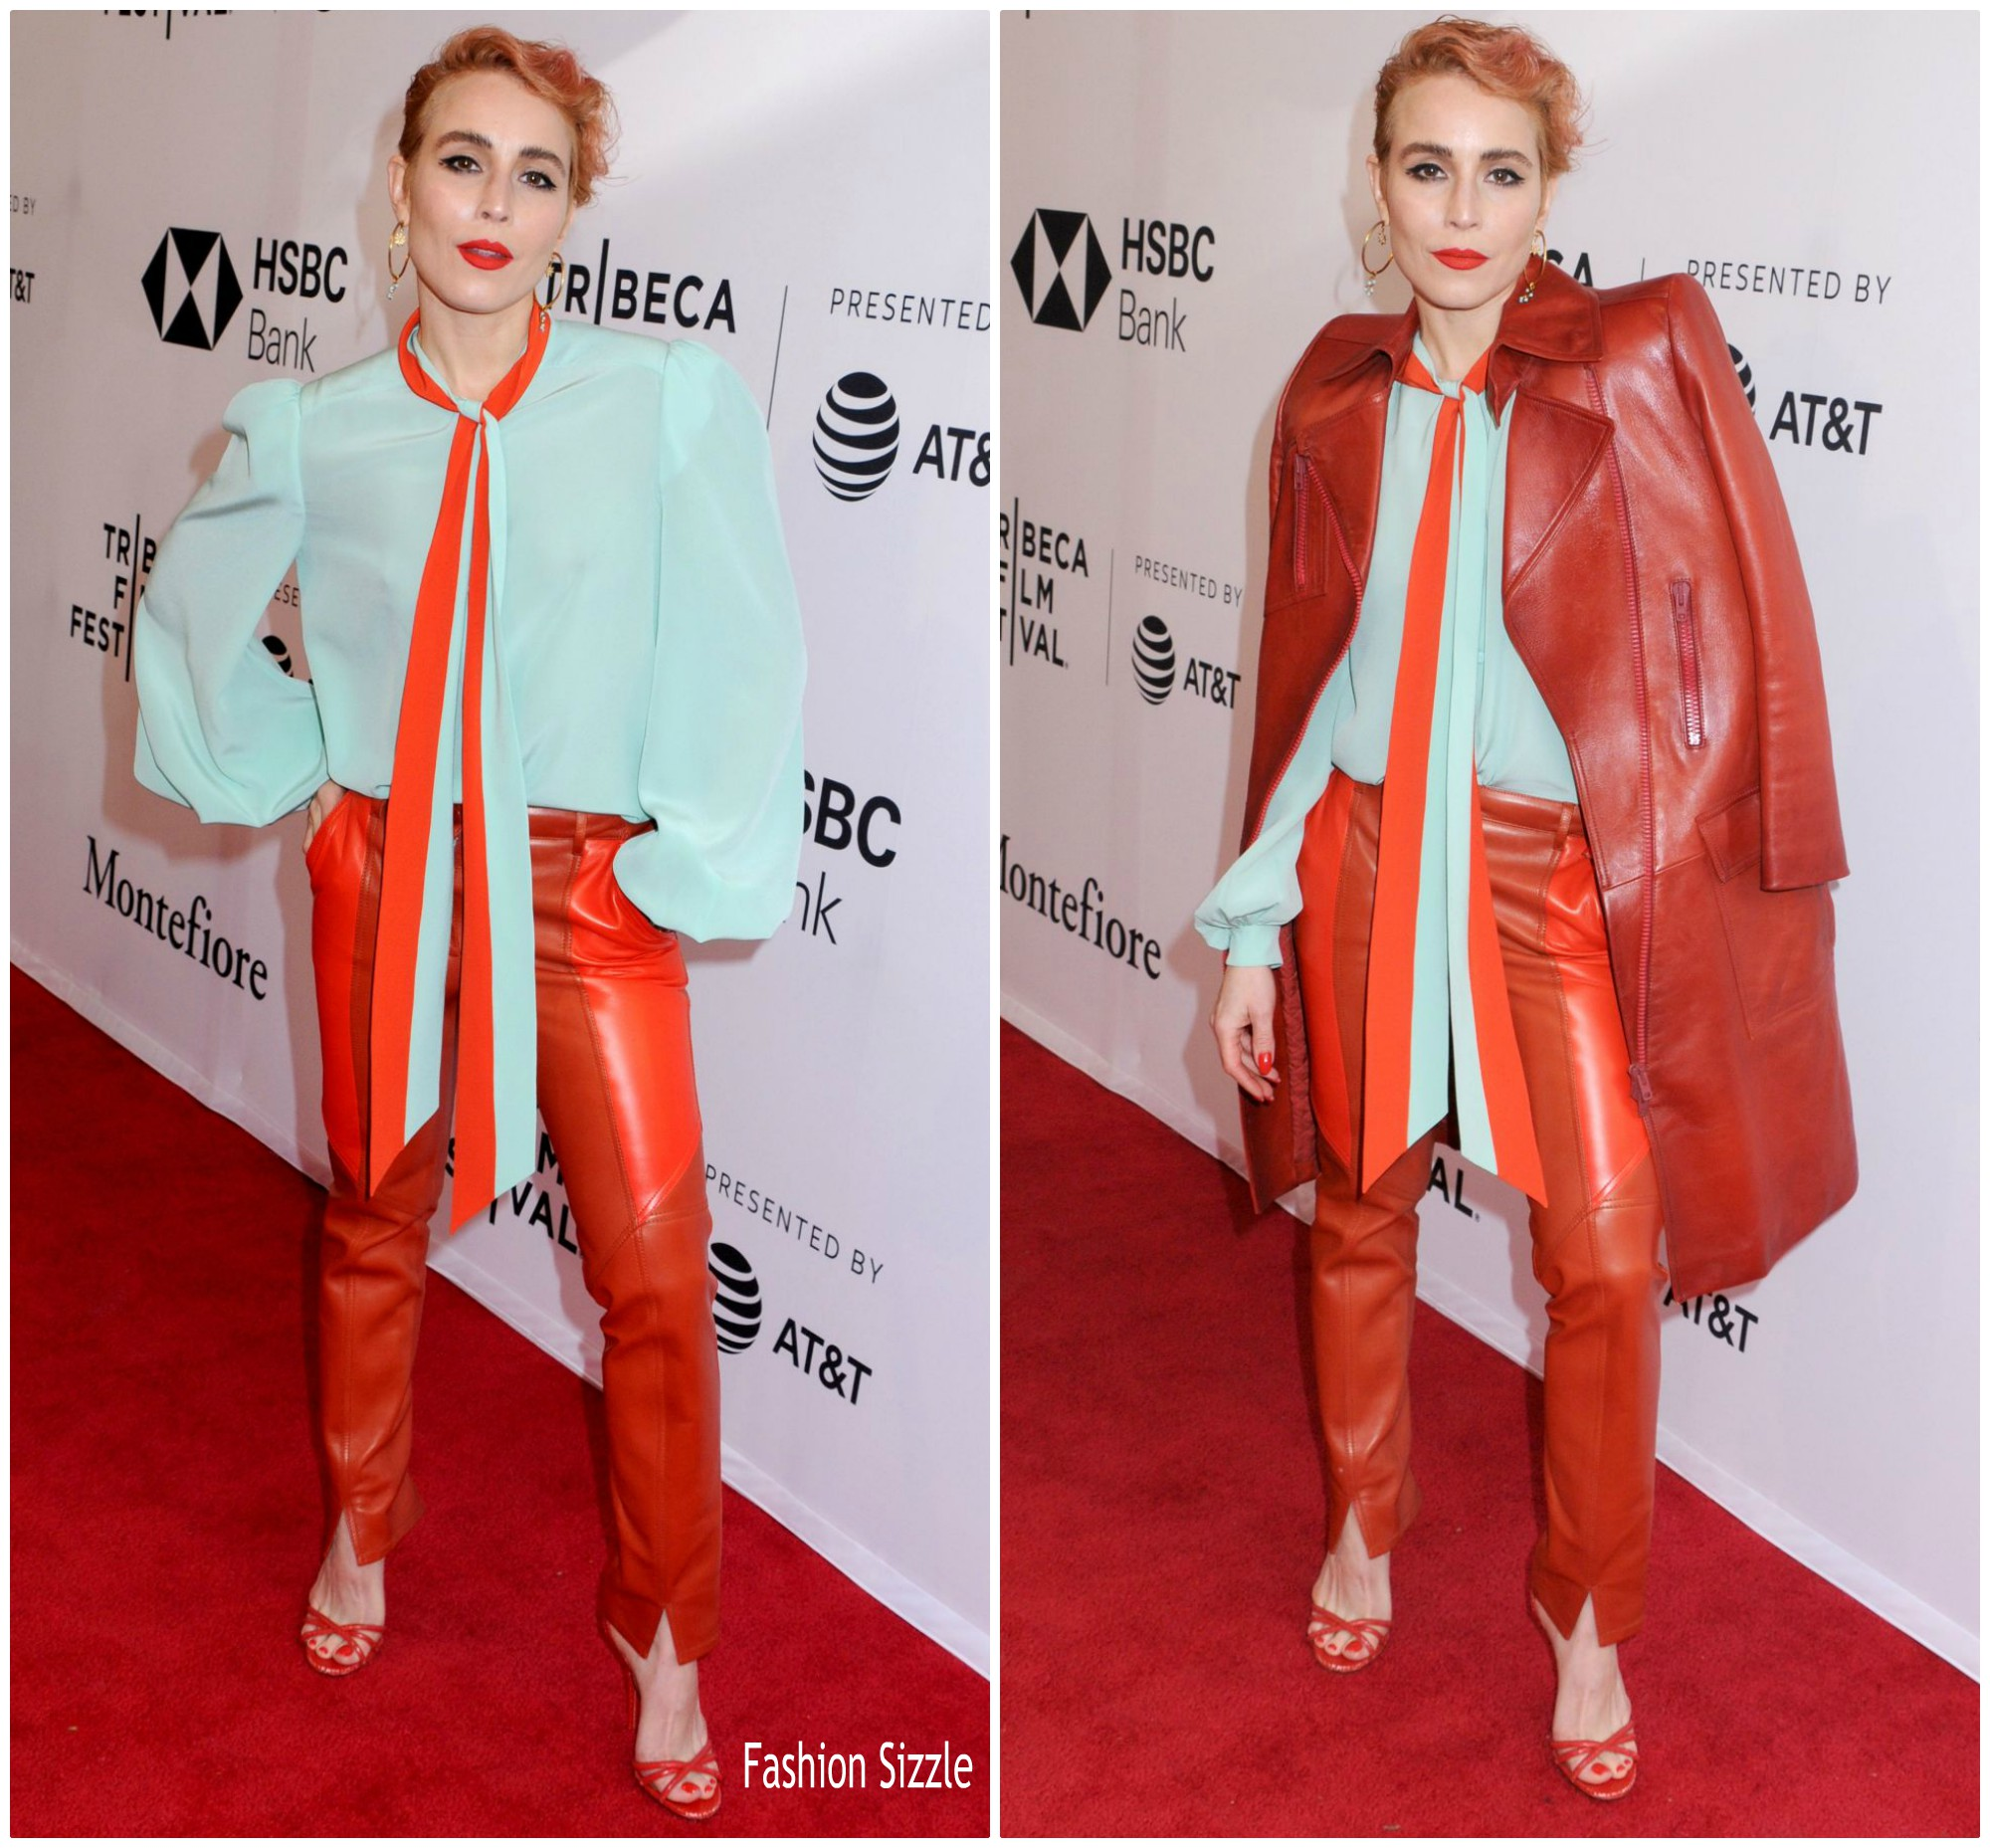 noomi-rapace-in-givenchy-stockholm-tribeca-film-festival-premiere